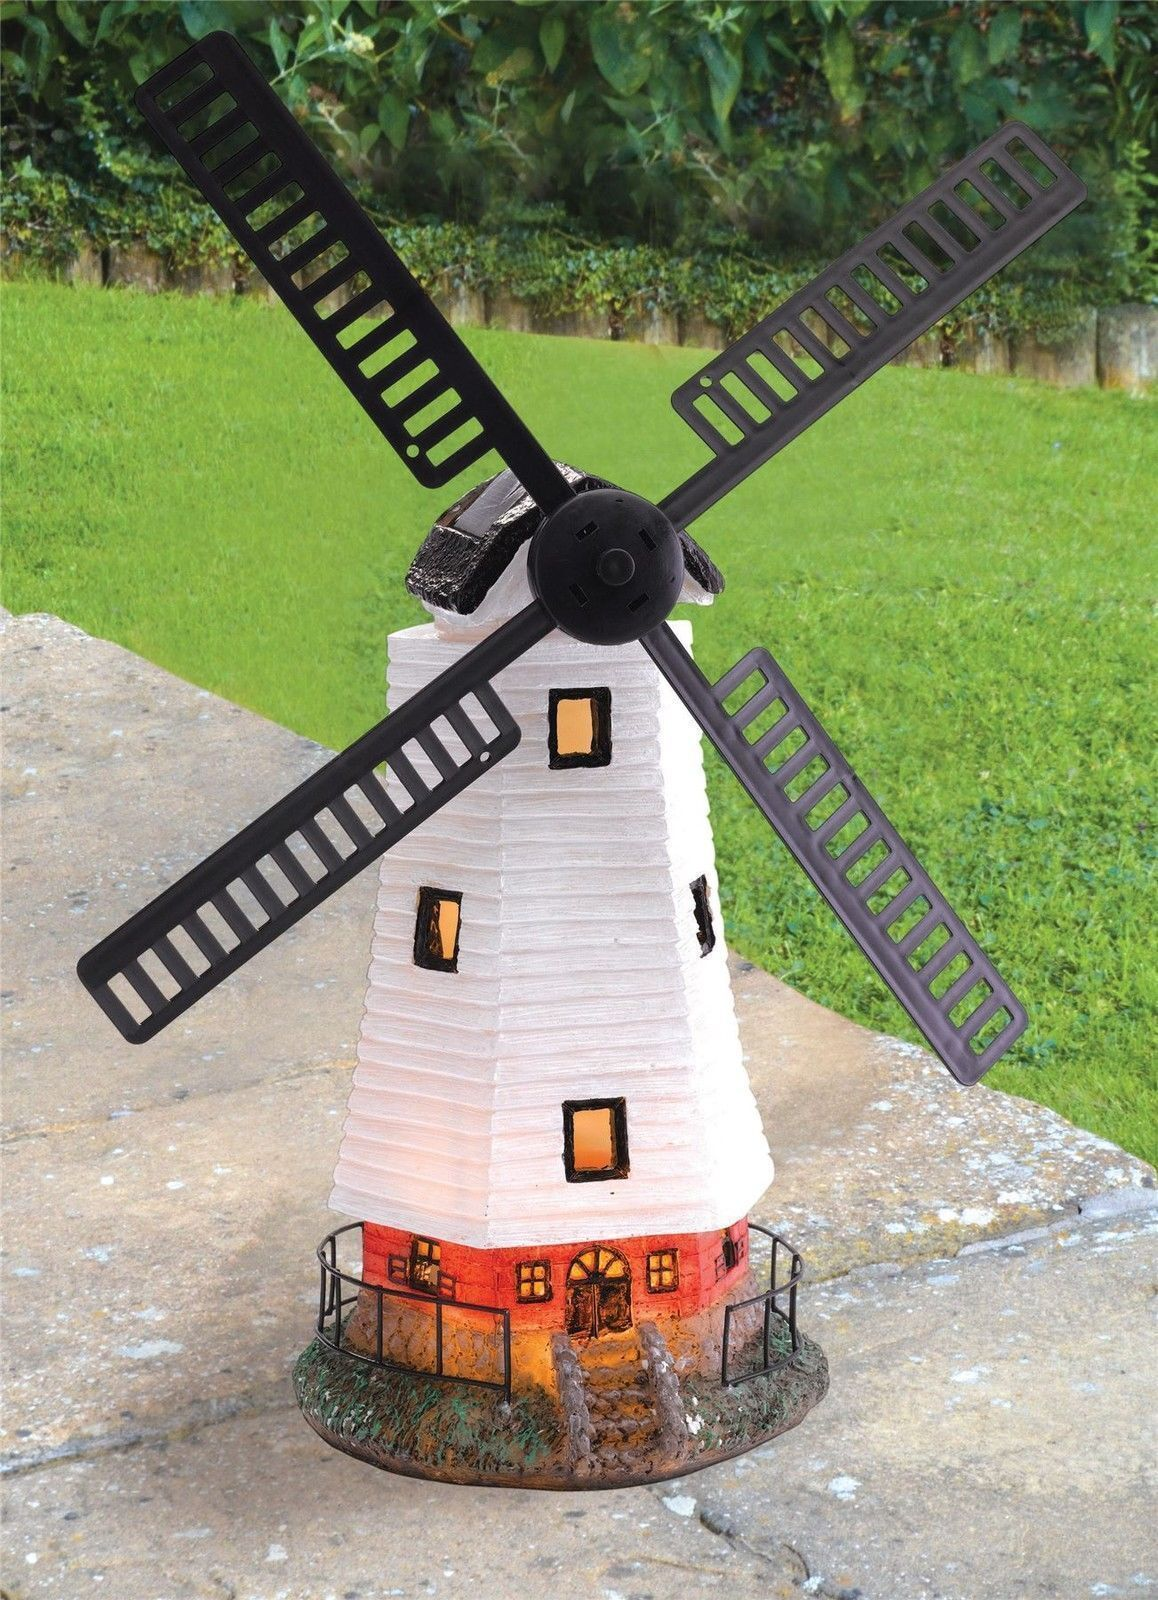 new large solar powered led motion light windmill garden. Black Bedroom Furniture Sets. Home Design Ideas